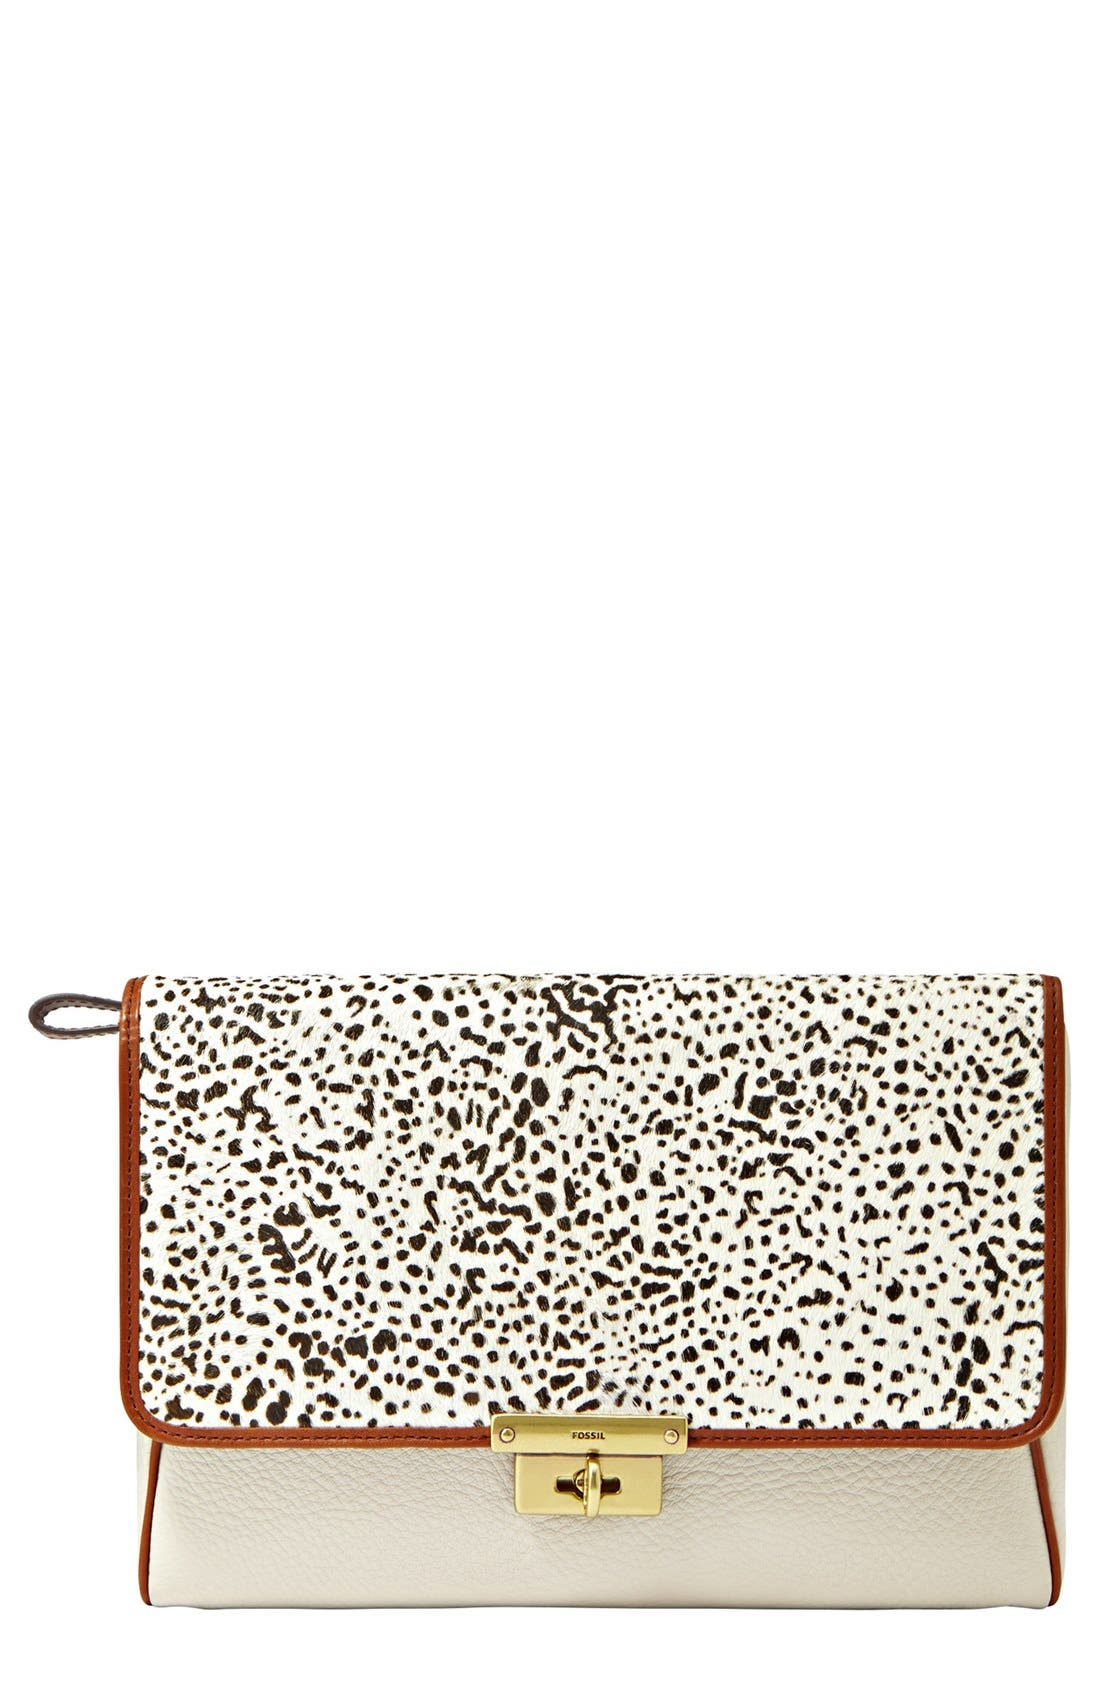 Main Image - Fossil 'Memoir' Genuine Calf Hair Clutch